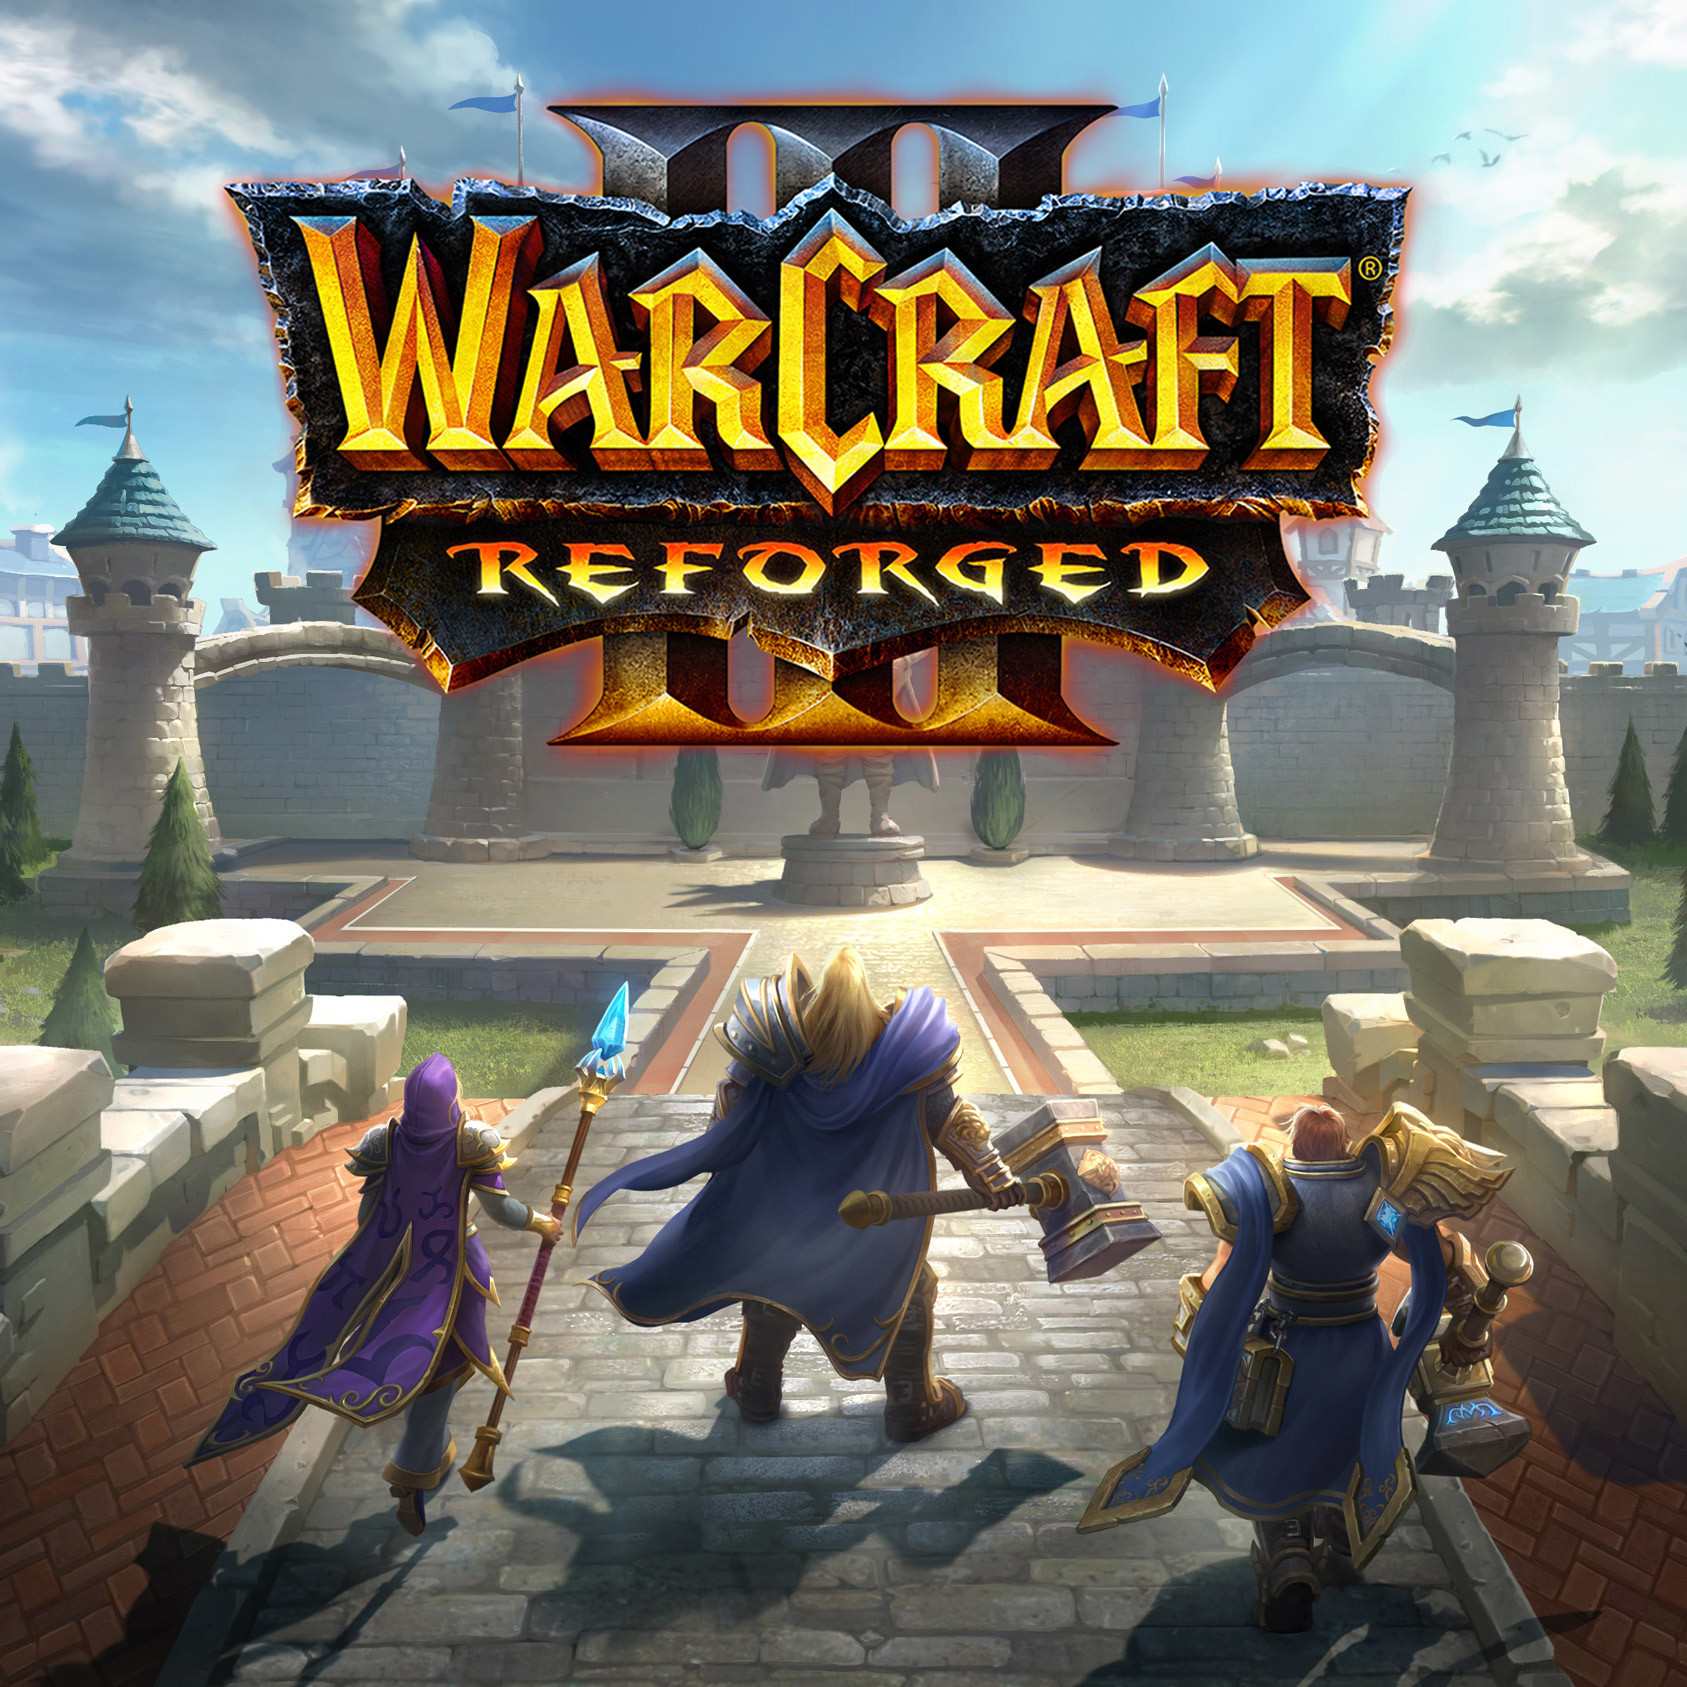 ArtStation - Warcraft III Reforged - Intro Screen, Eilene Cherie